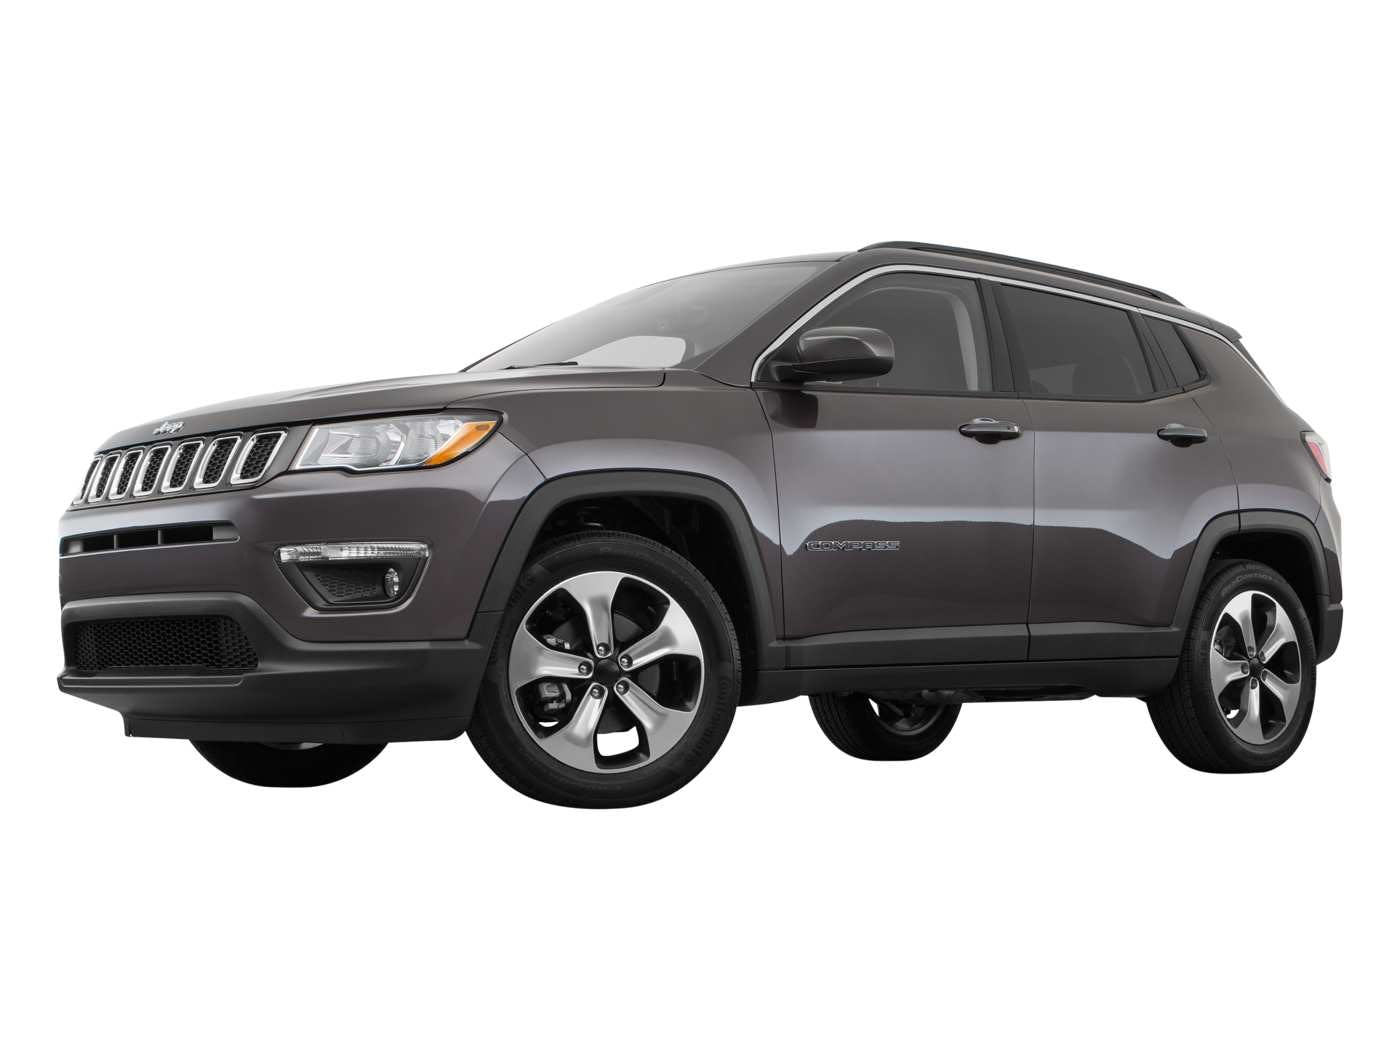 2019 Jeep Compass Prices Incentives Dealers Truecar Mopar Off Road Fog Driving Lights Wiring Kit Patriot Exterior Front Low Wide View 2